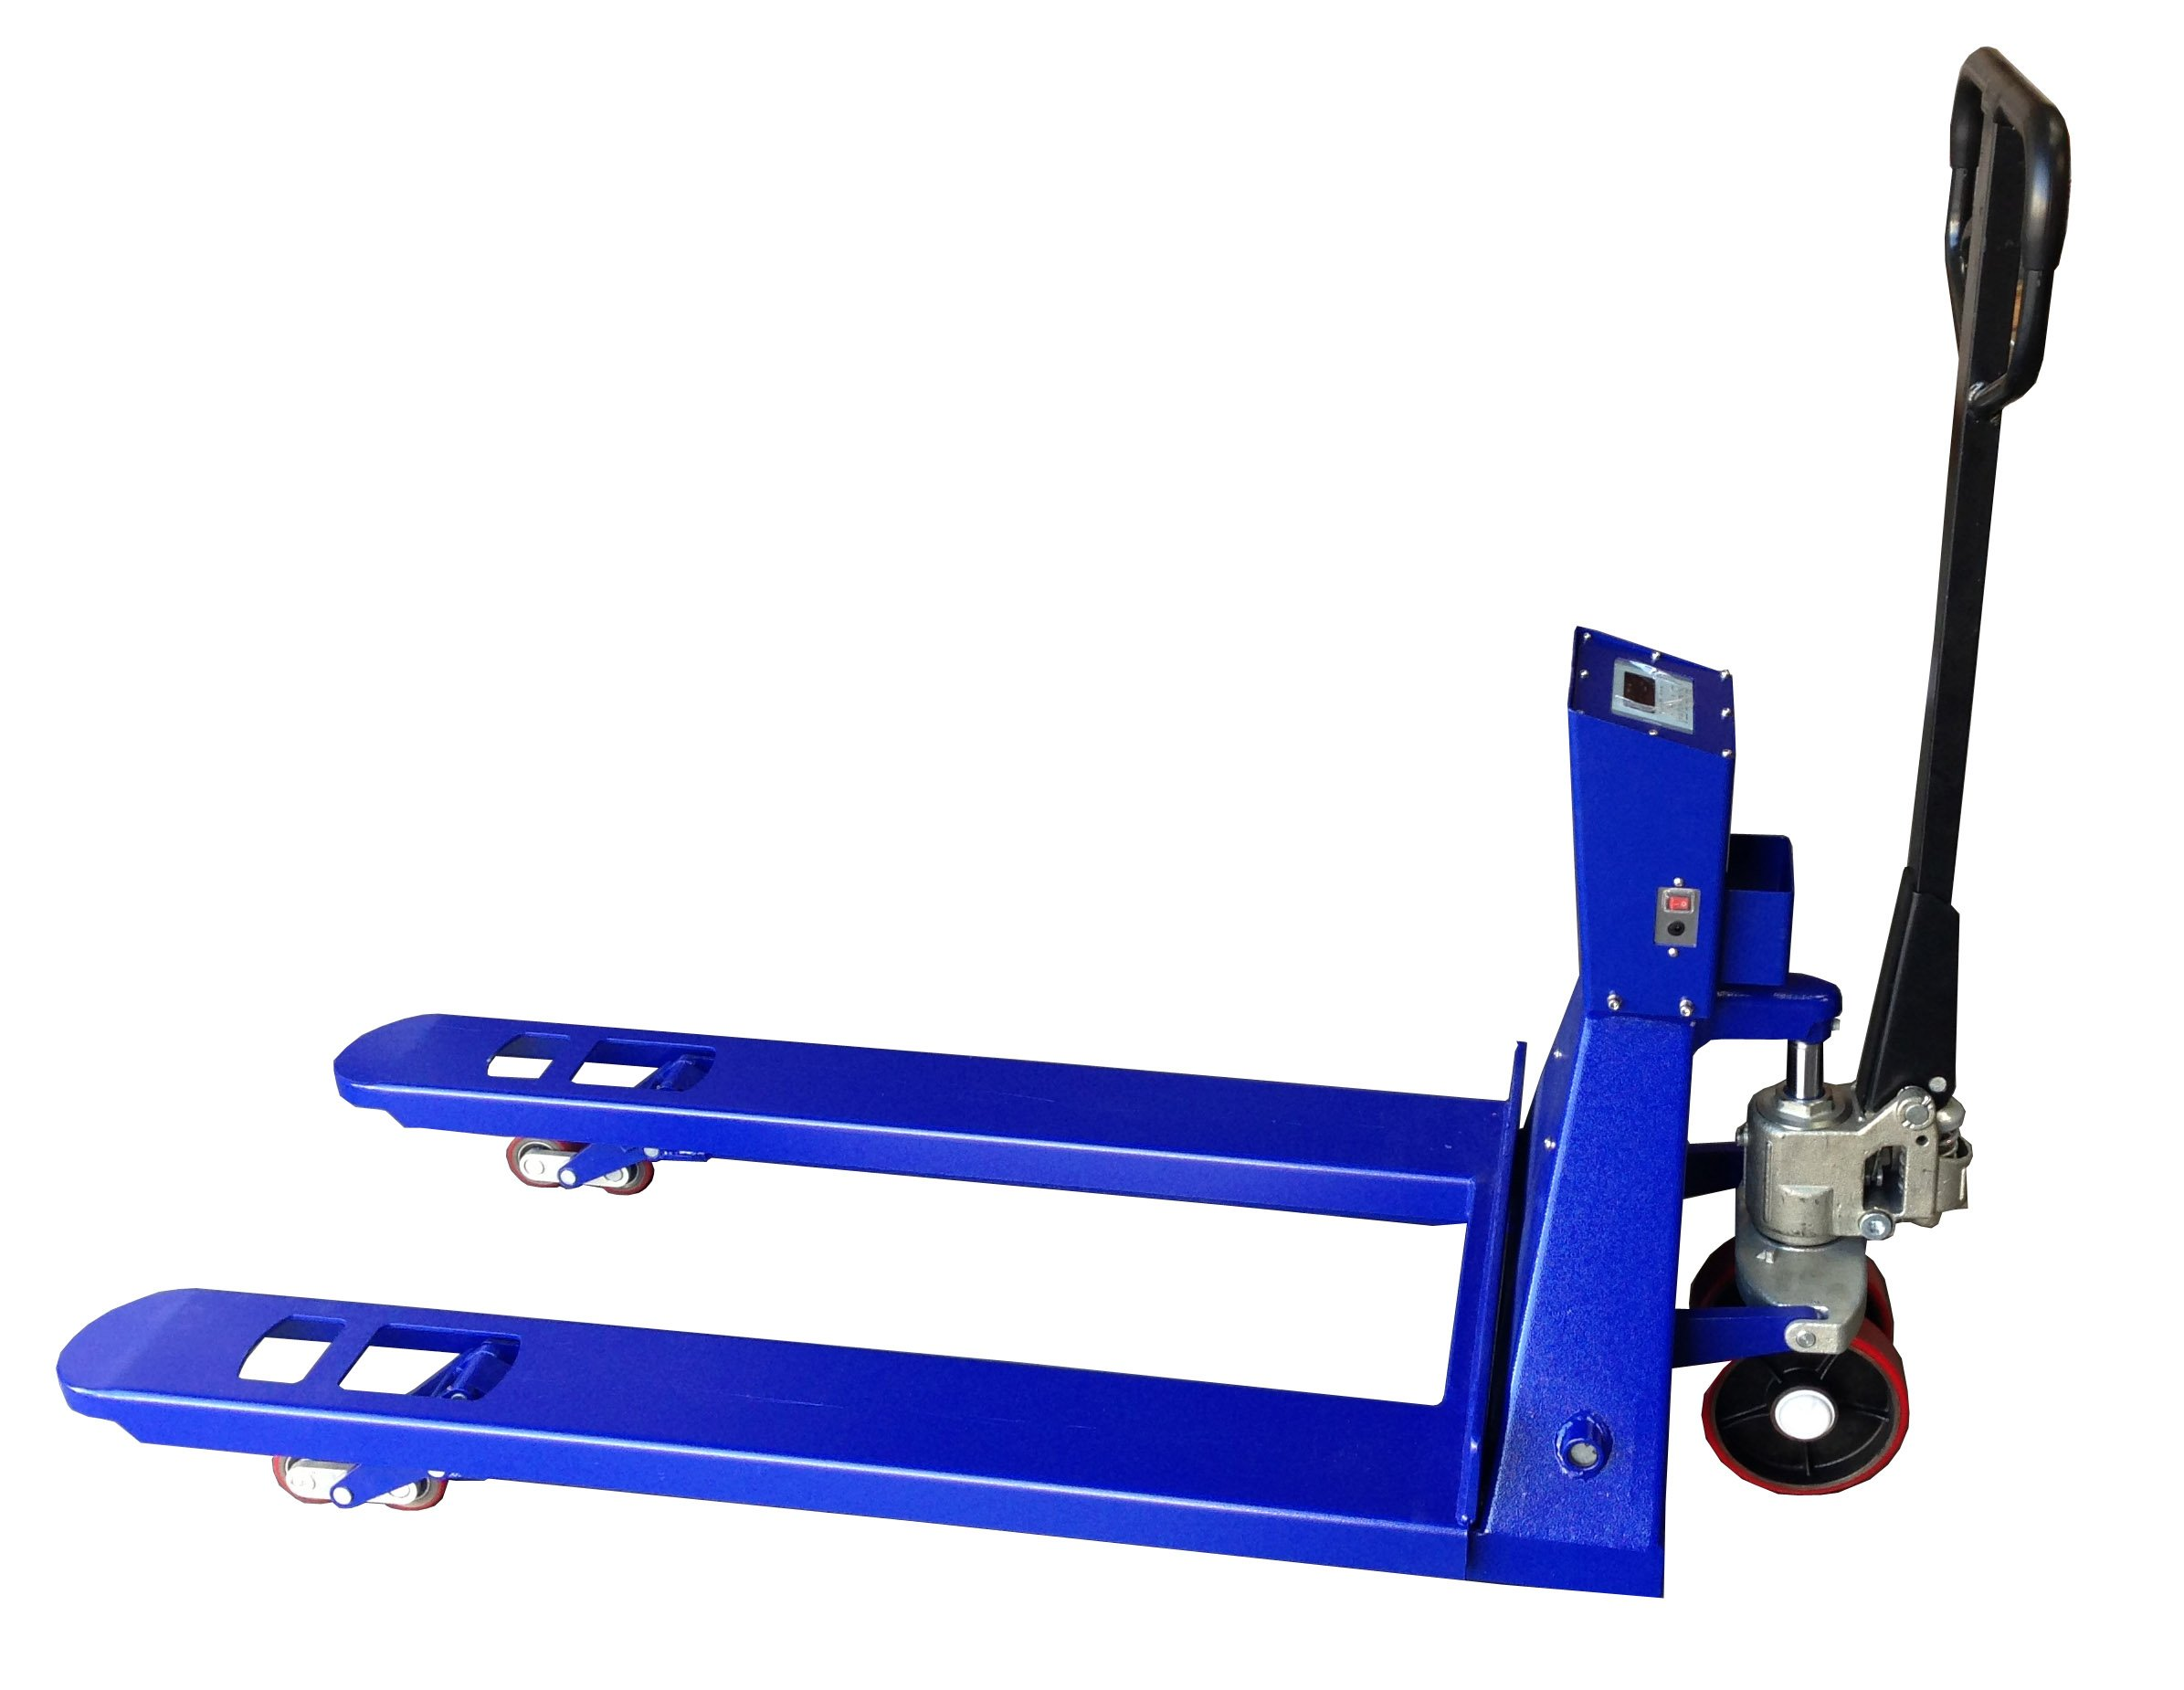 SAGA Pallet Jack Scale With Printer 6600lb x 1lb, Pallet Jack With Digital Scale Built Thermal Printer, Brand New Pallet Truck Scale by SAGA